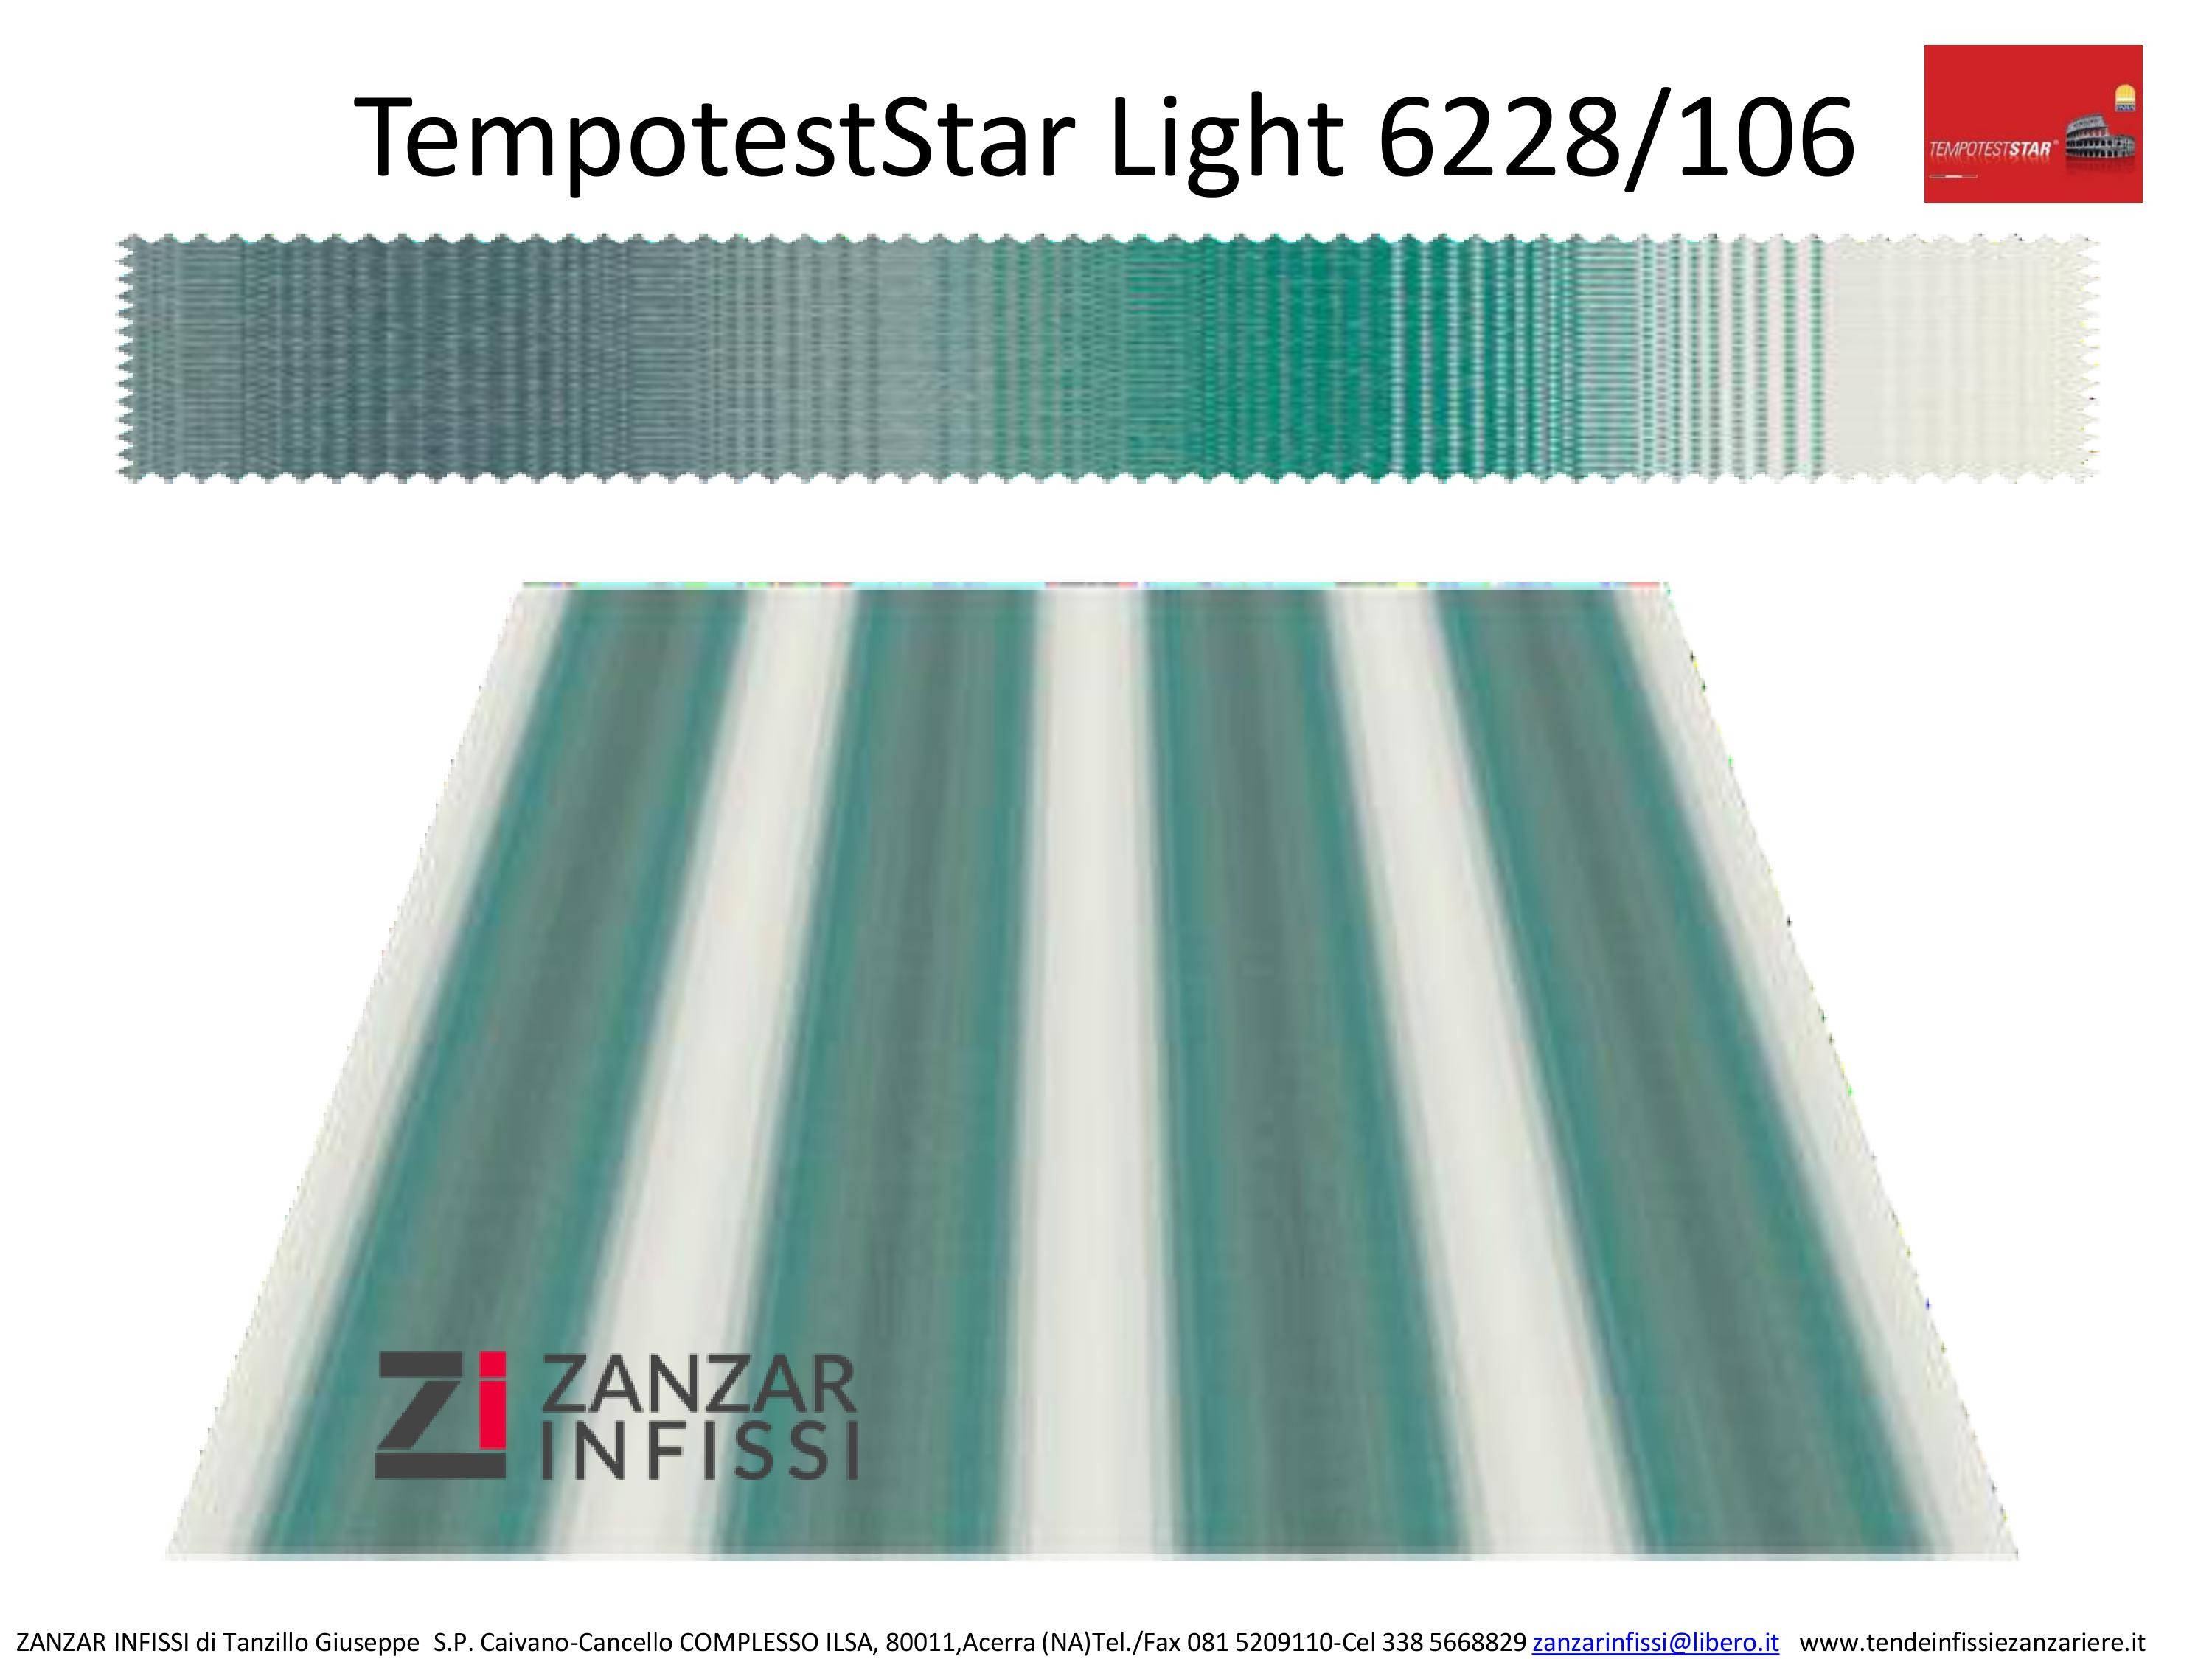 Tempotest star light 6228/106